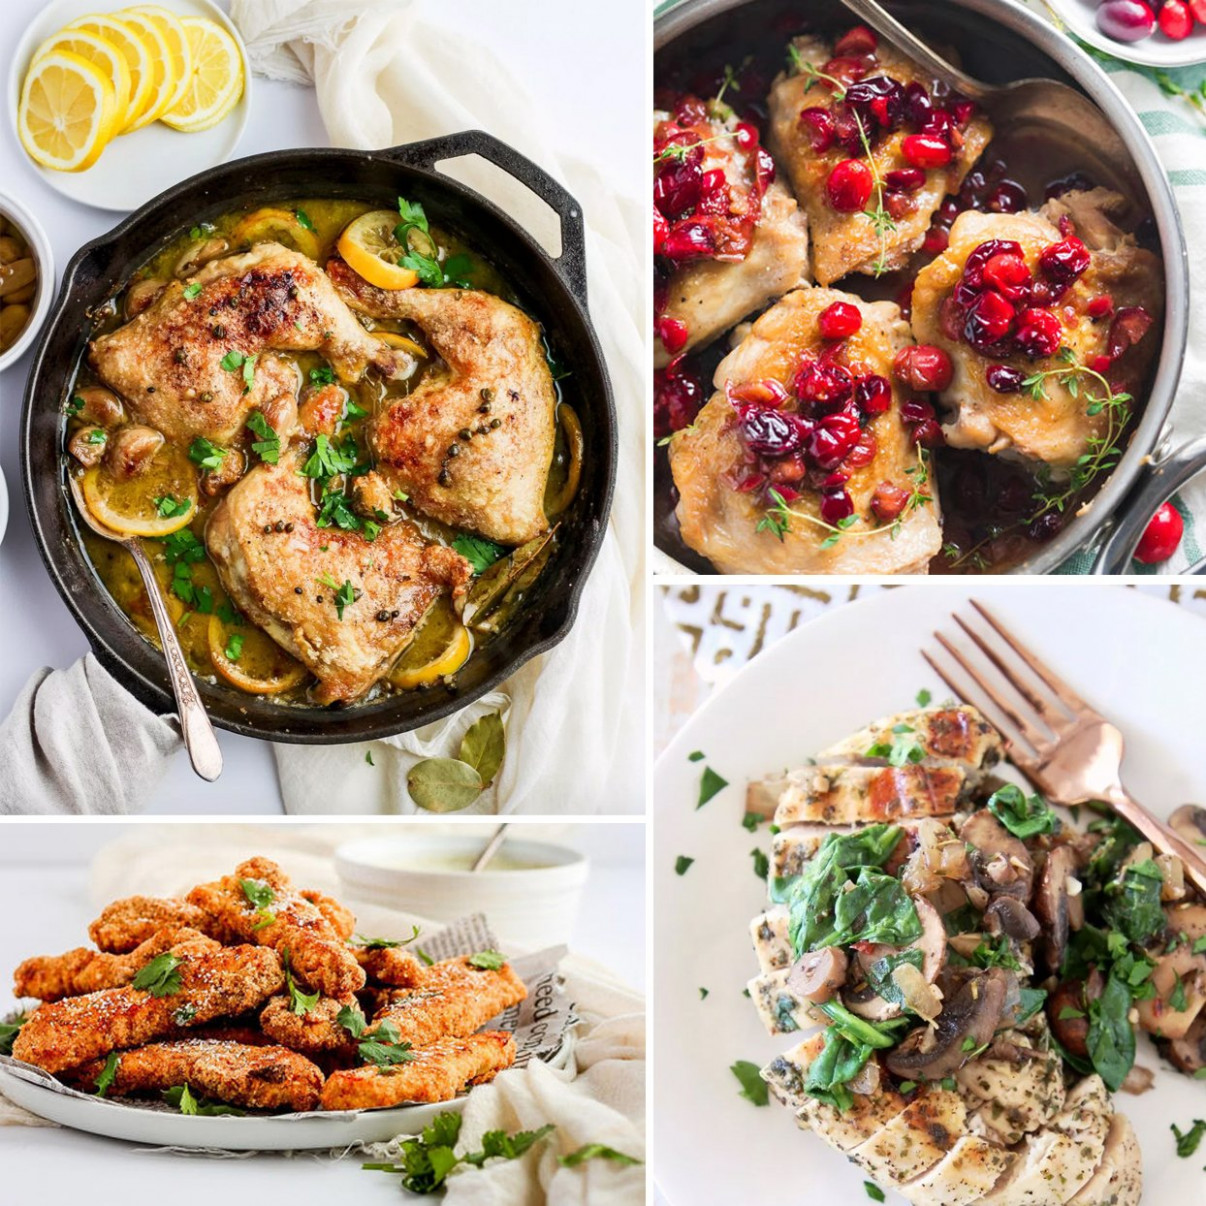 14 Healthy Whole 14 Chicken Recipes | Shape - chicken recipes to lose weight